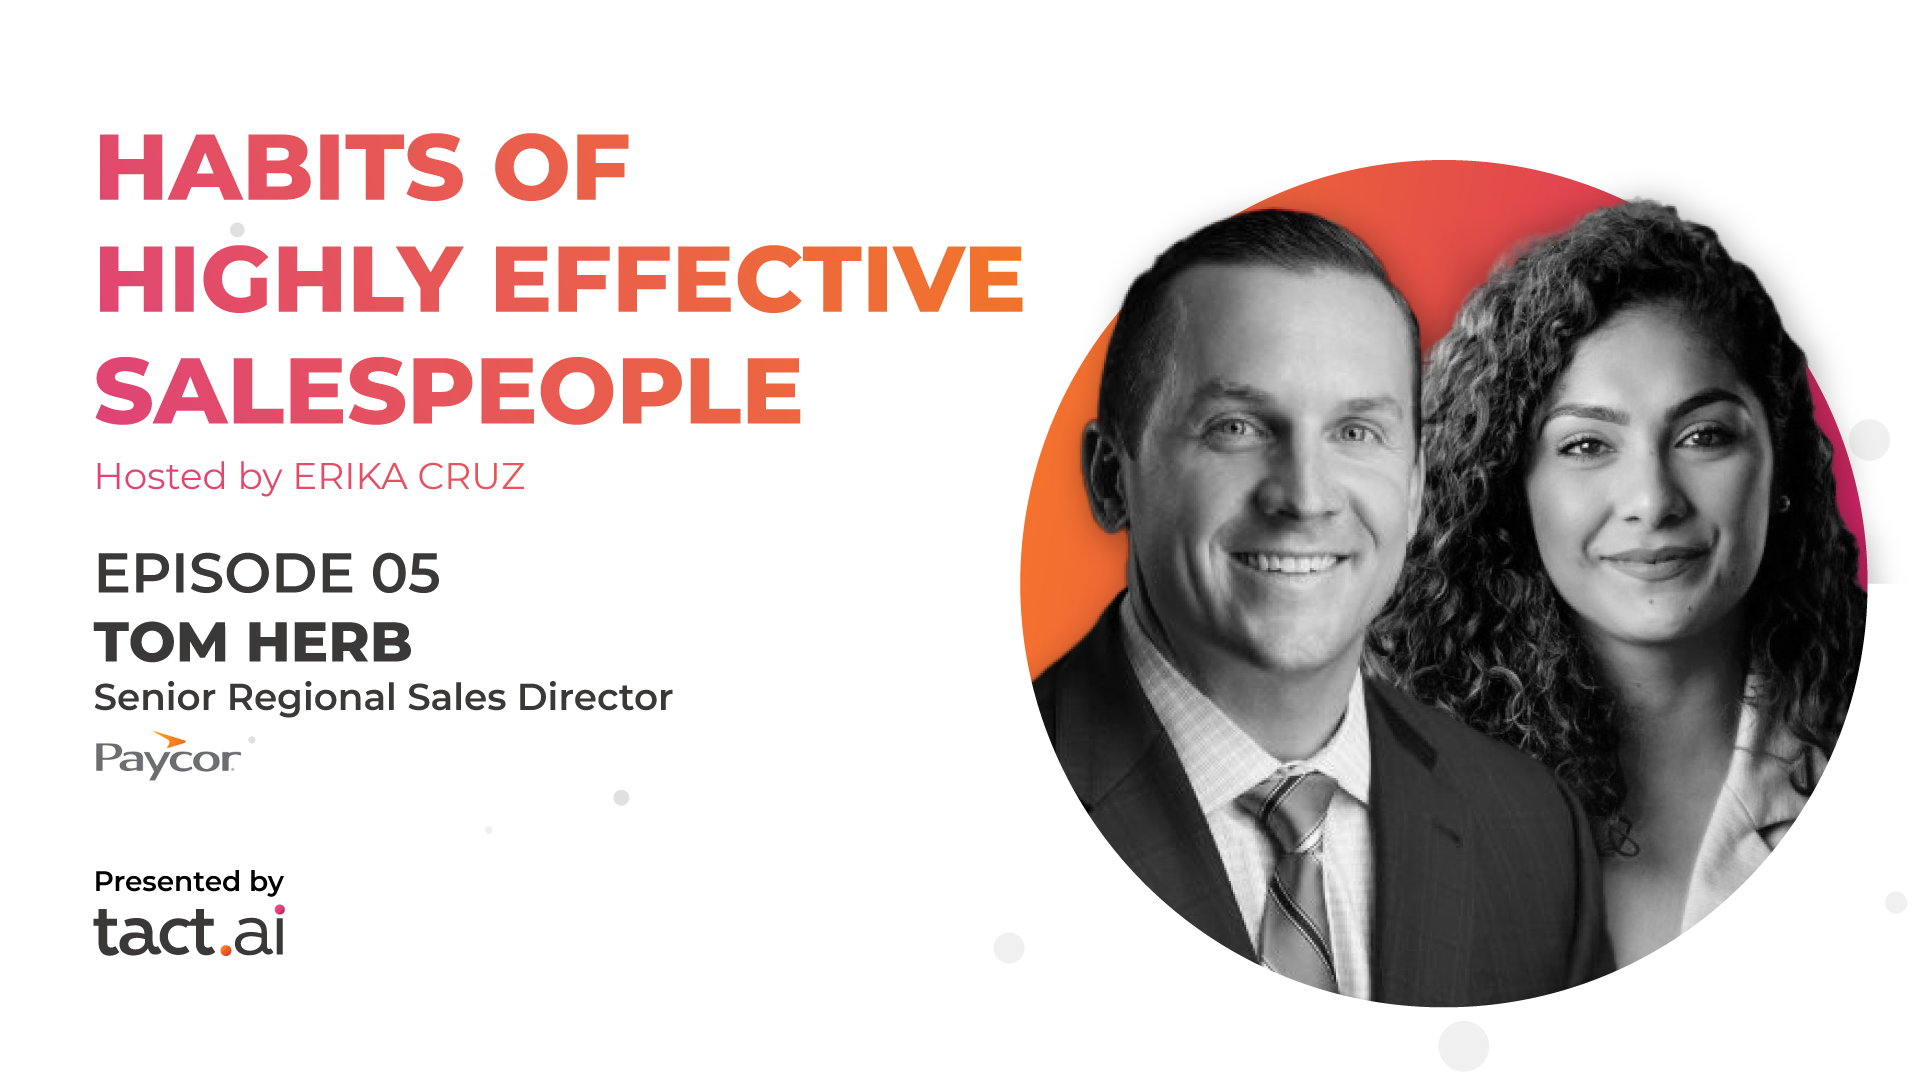 Habits of Highly Effective Salespeople - Tom Herb - Episode 5